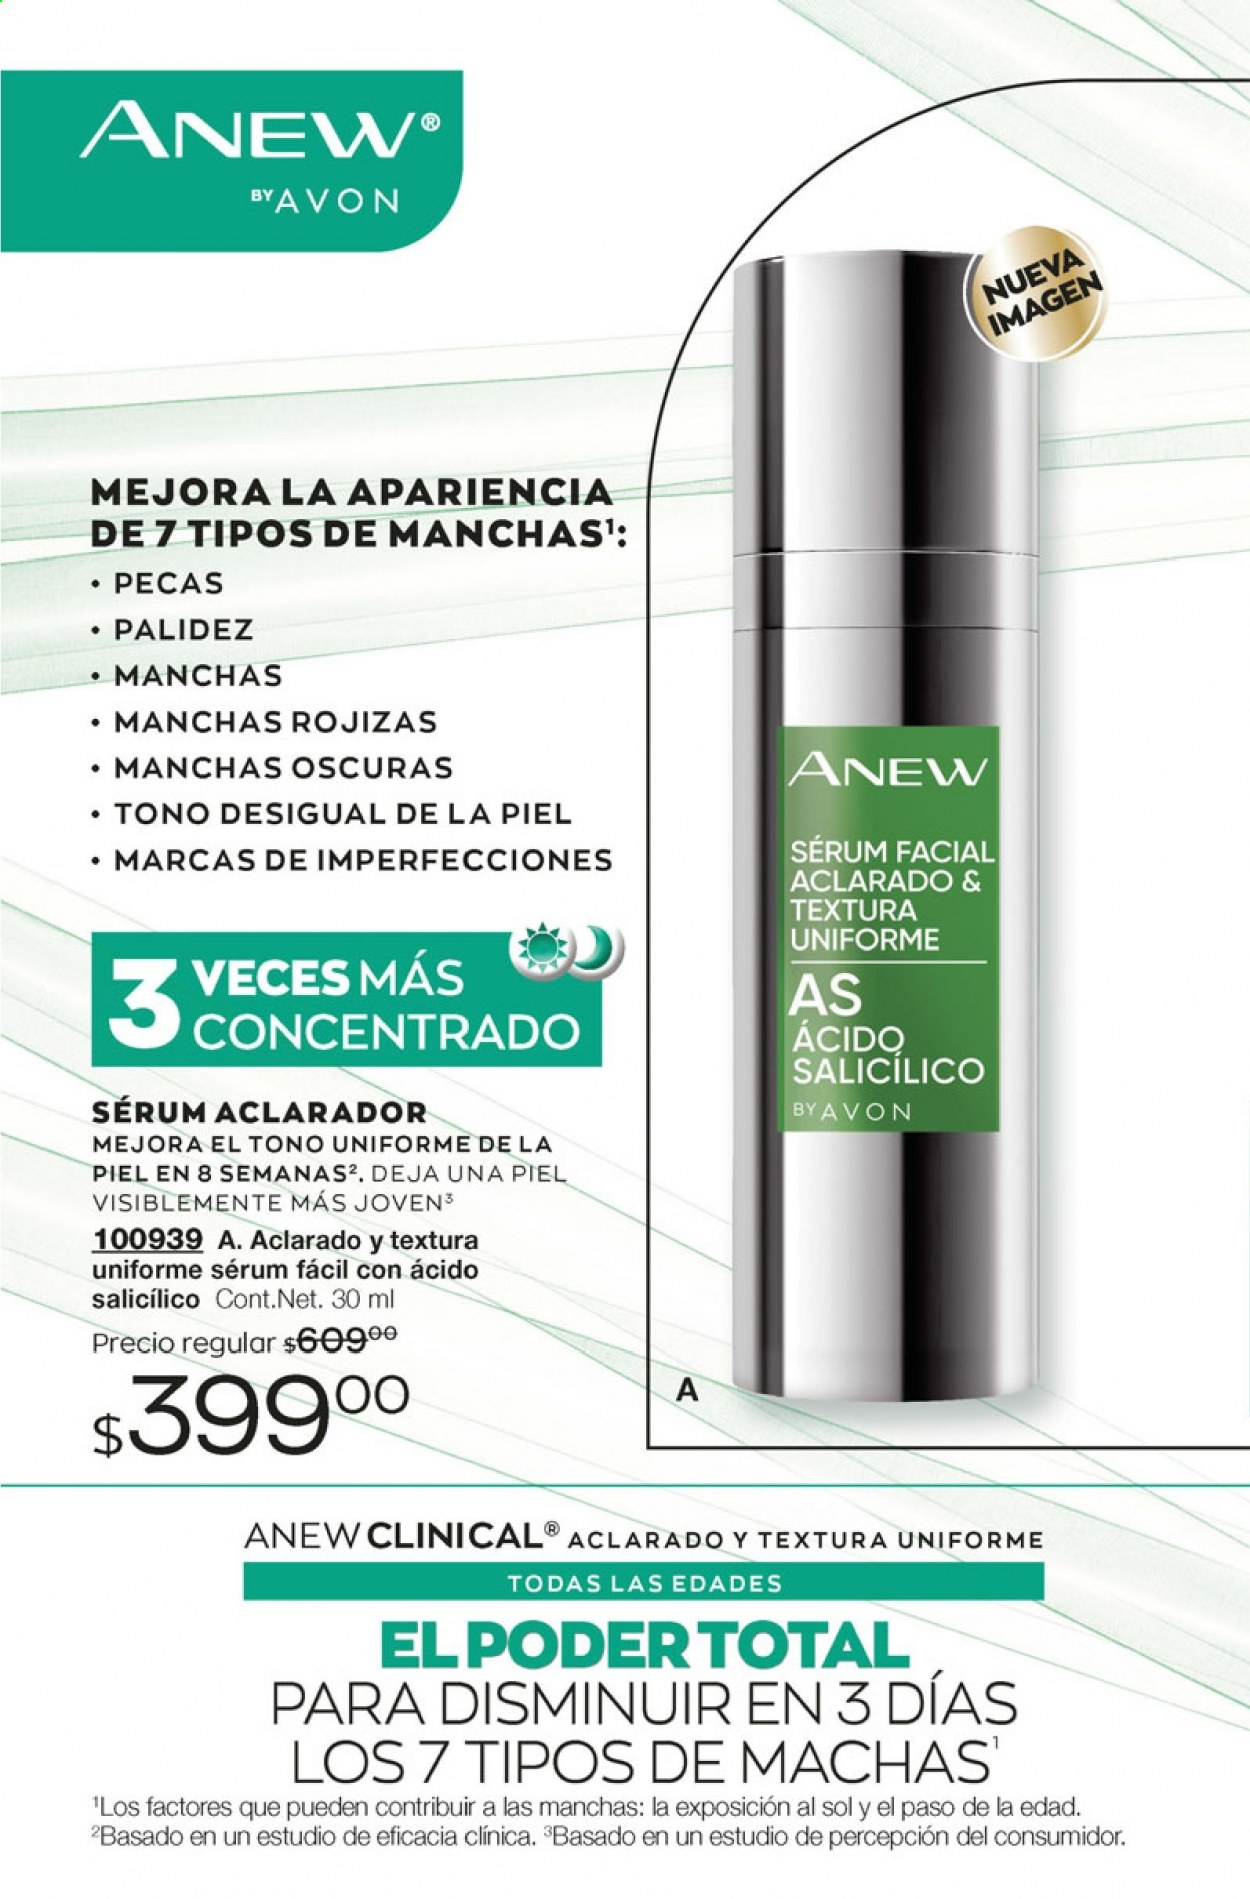 Folleto actual Avon - 5.10.2020 - 5.11.2020 - Ventas - anew, clinical, sérum, clínica. Página 6.